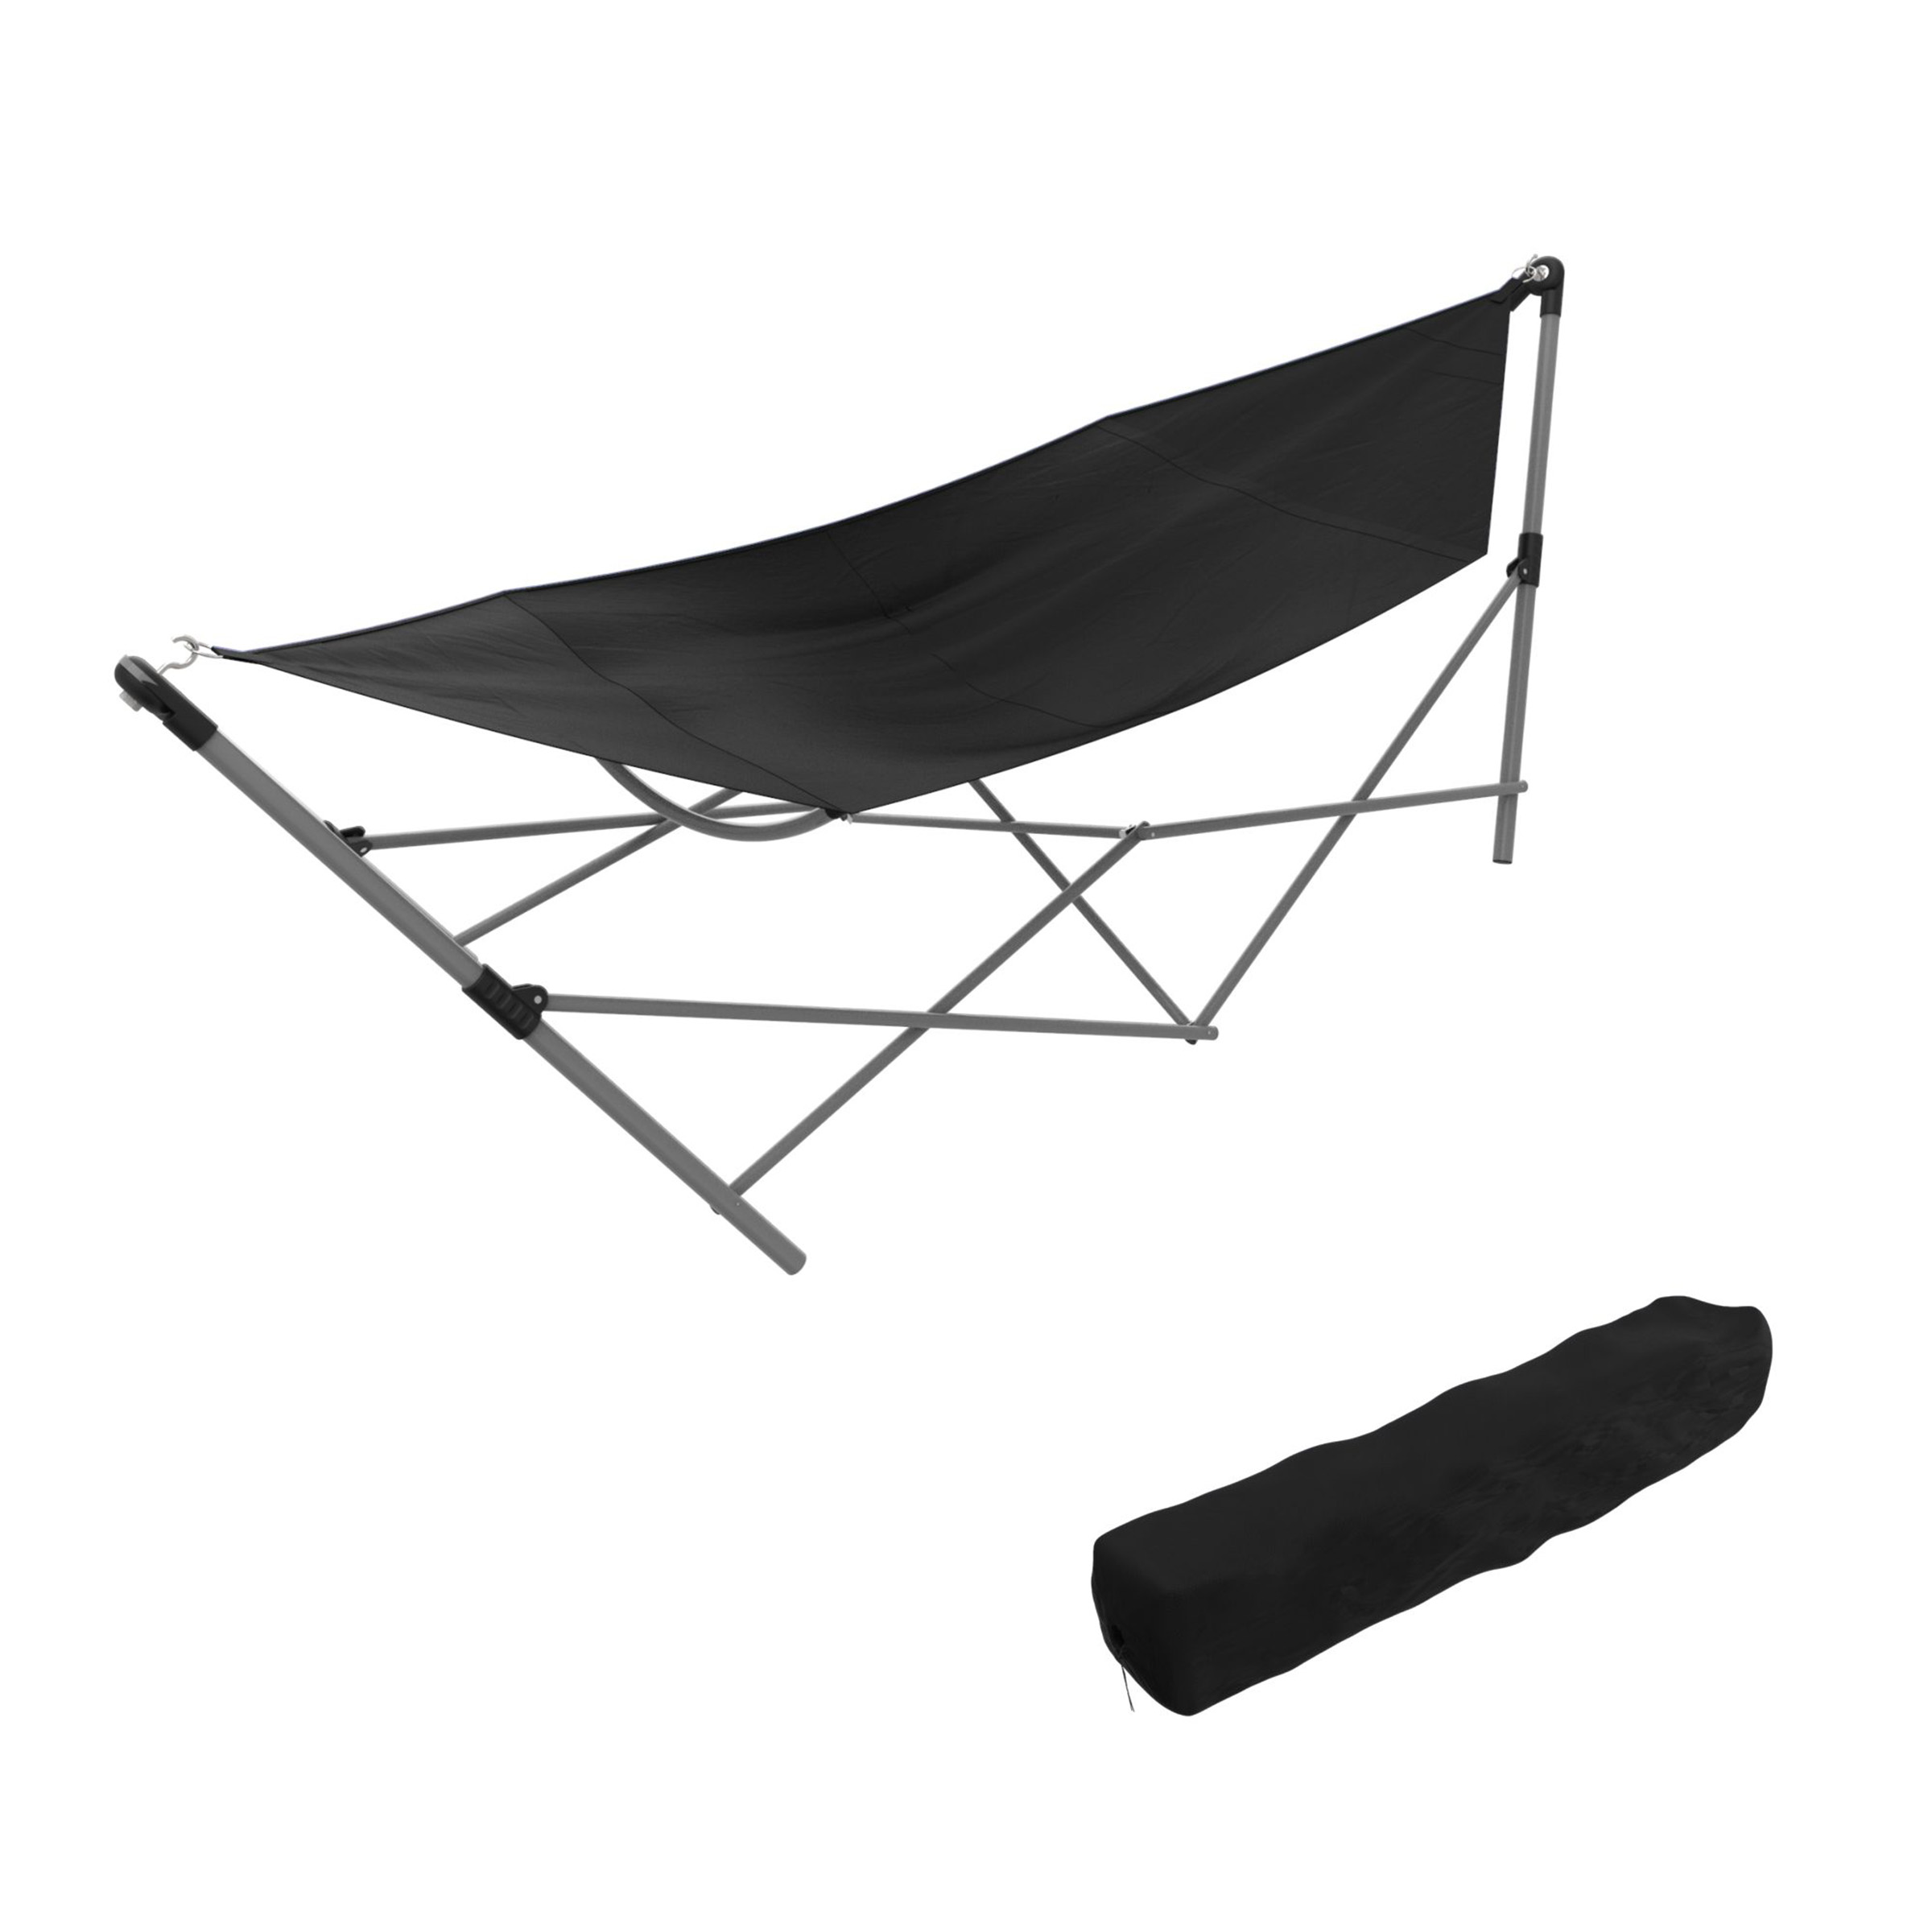 Portable Hammock With Stand Folds And Fits Into Included Carry Bag